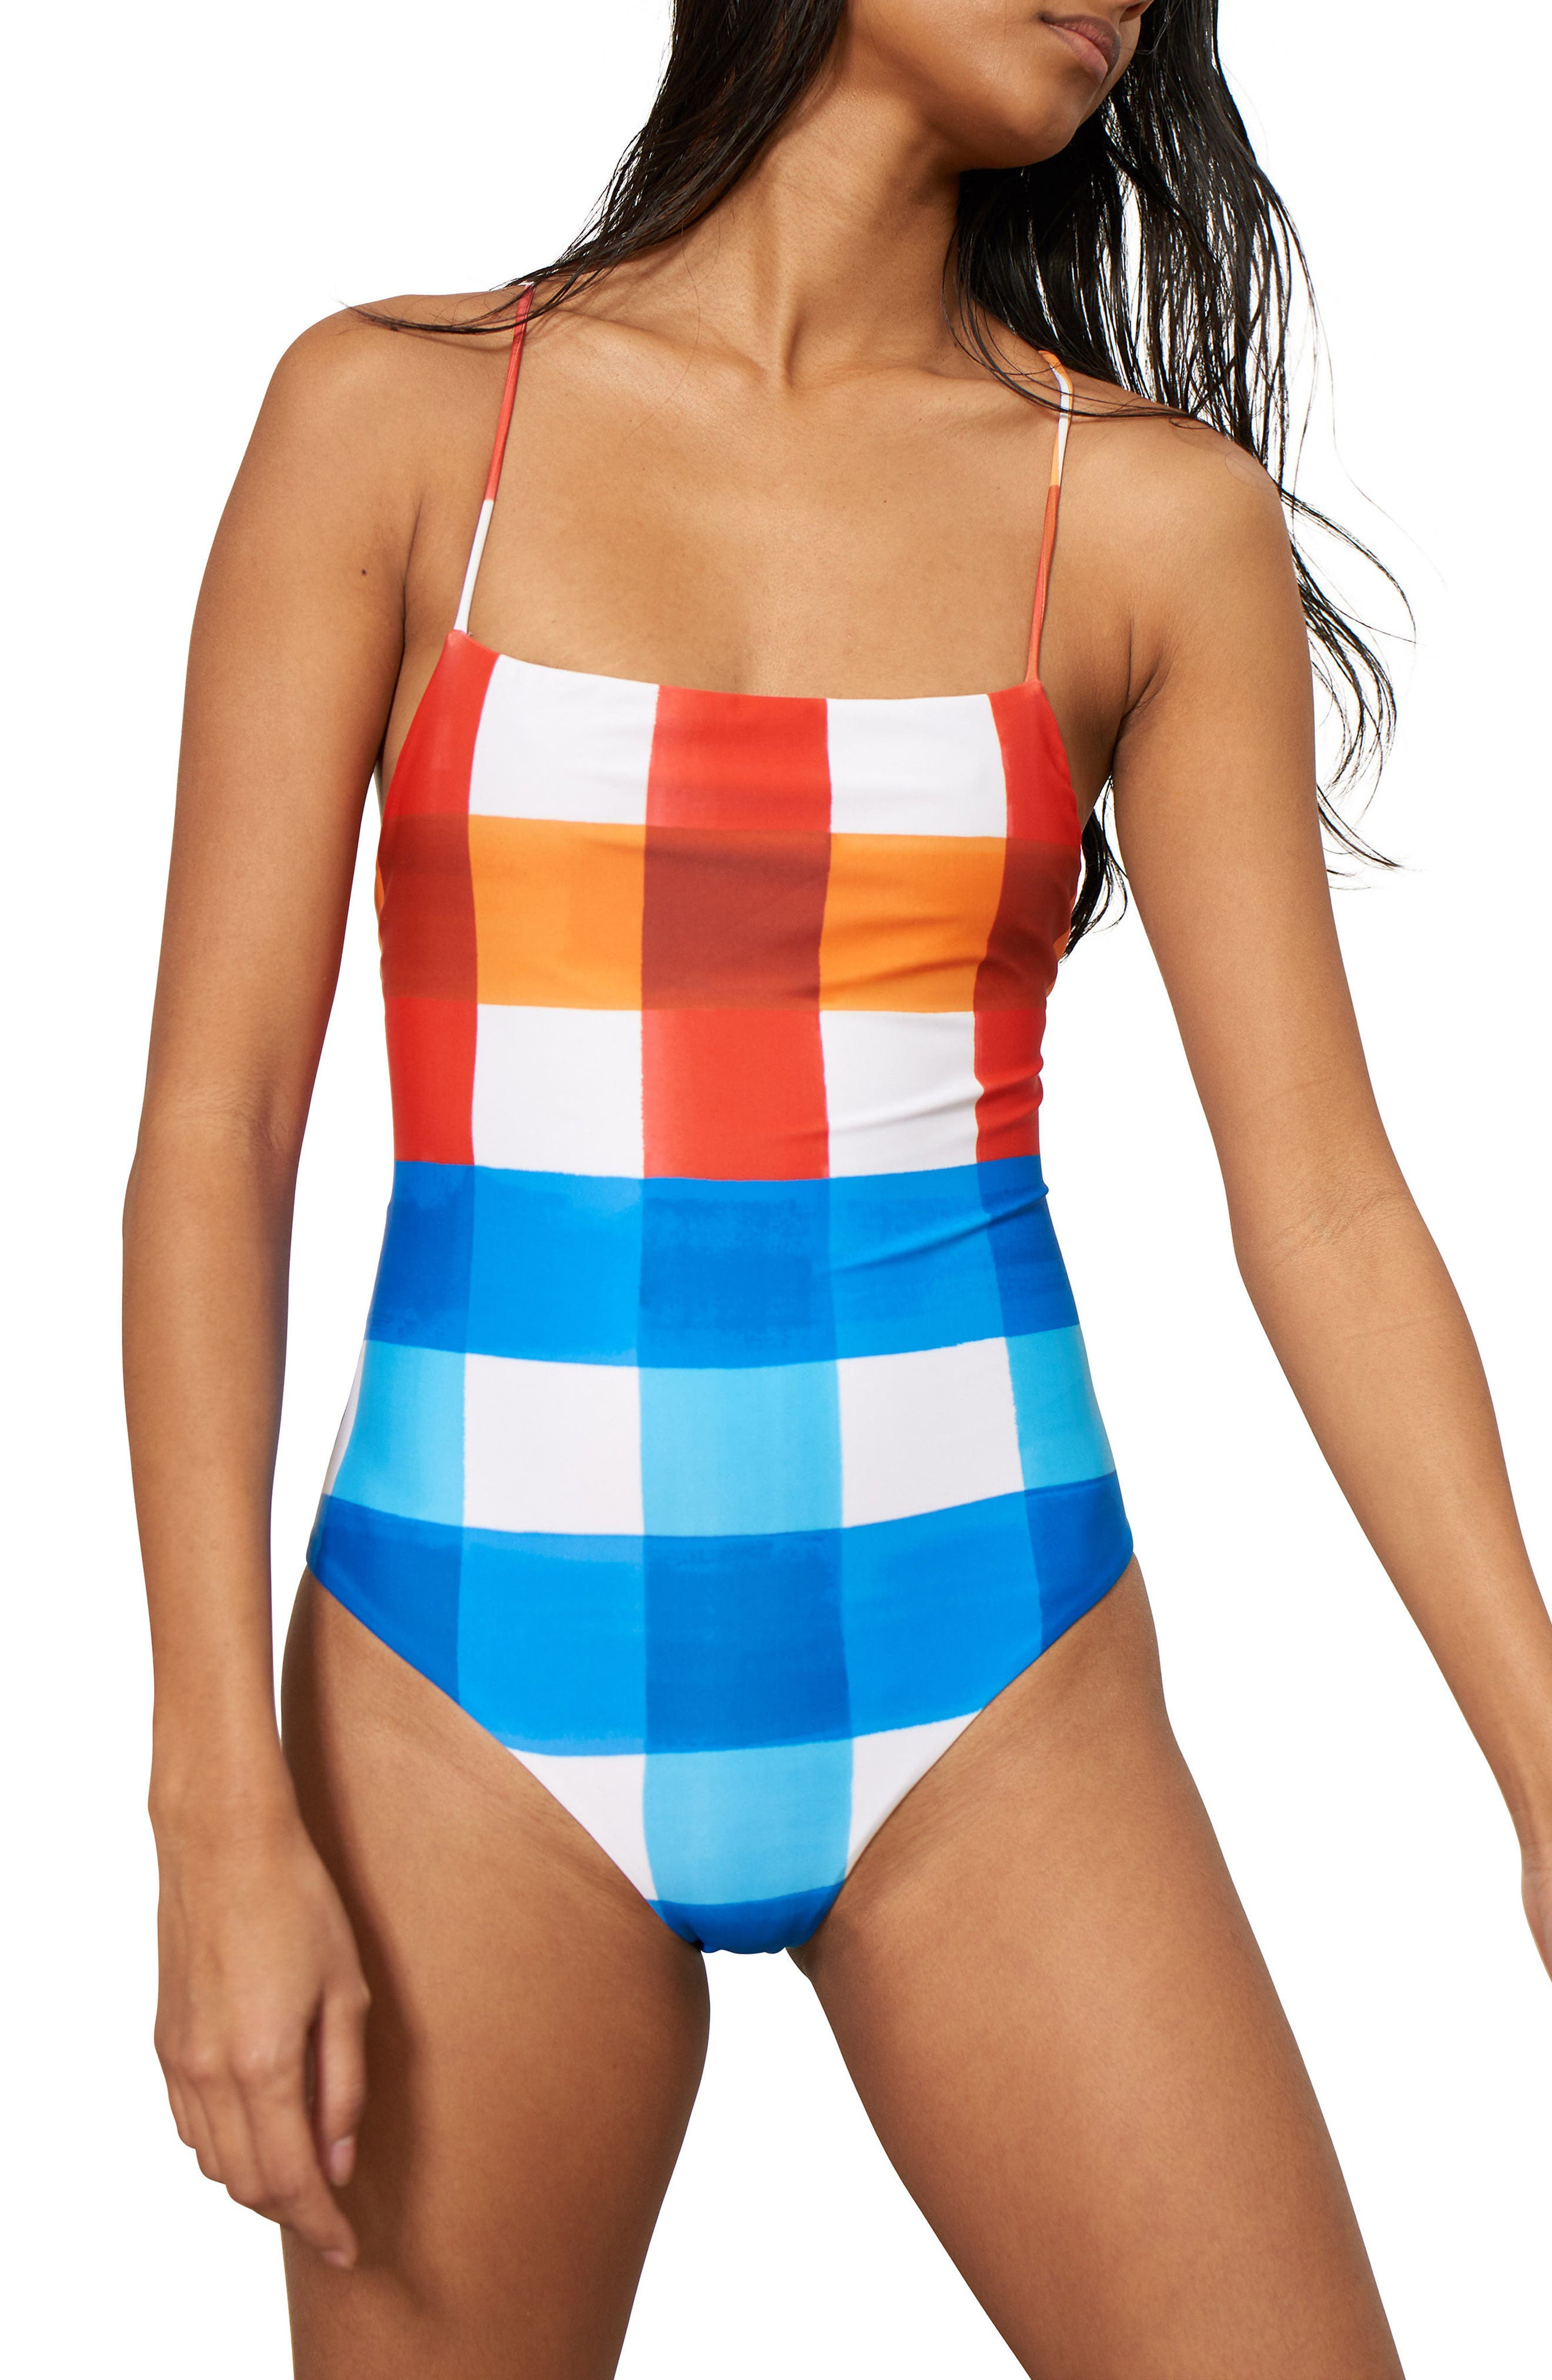 Mara Hoffman Olympia One-Piece Swimsuit, Red